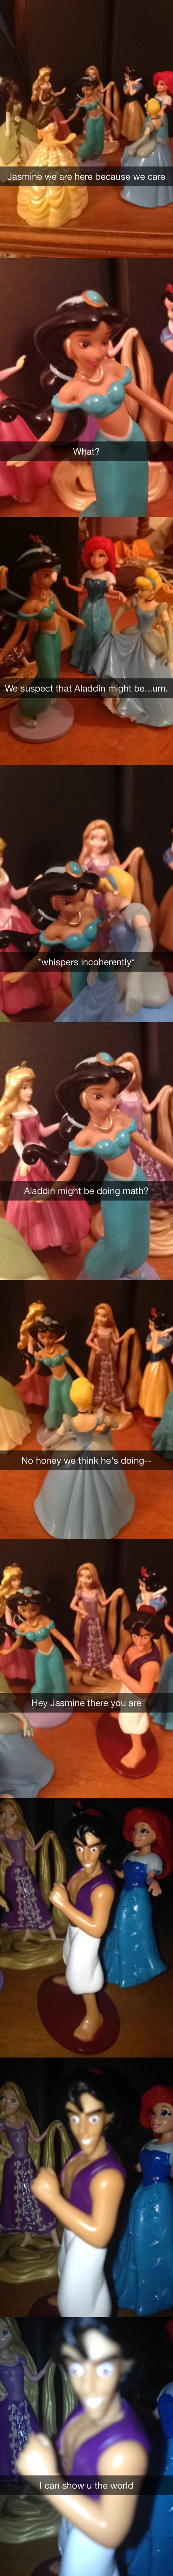 disney princesses joke, funny pics